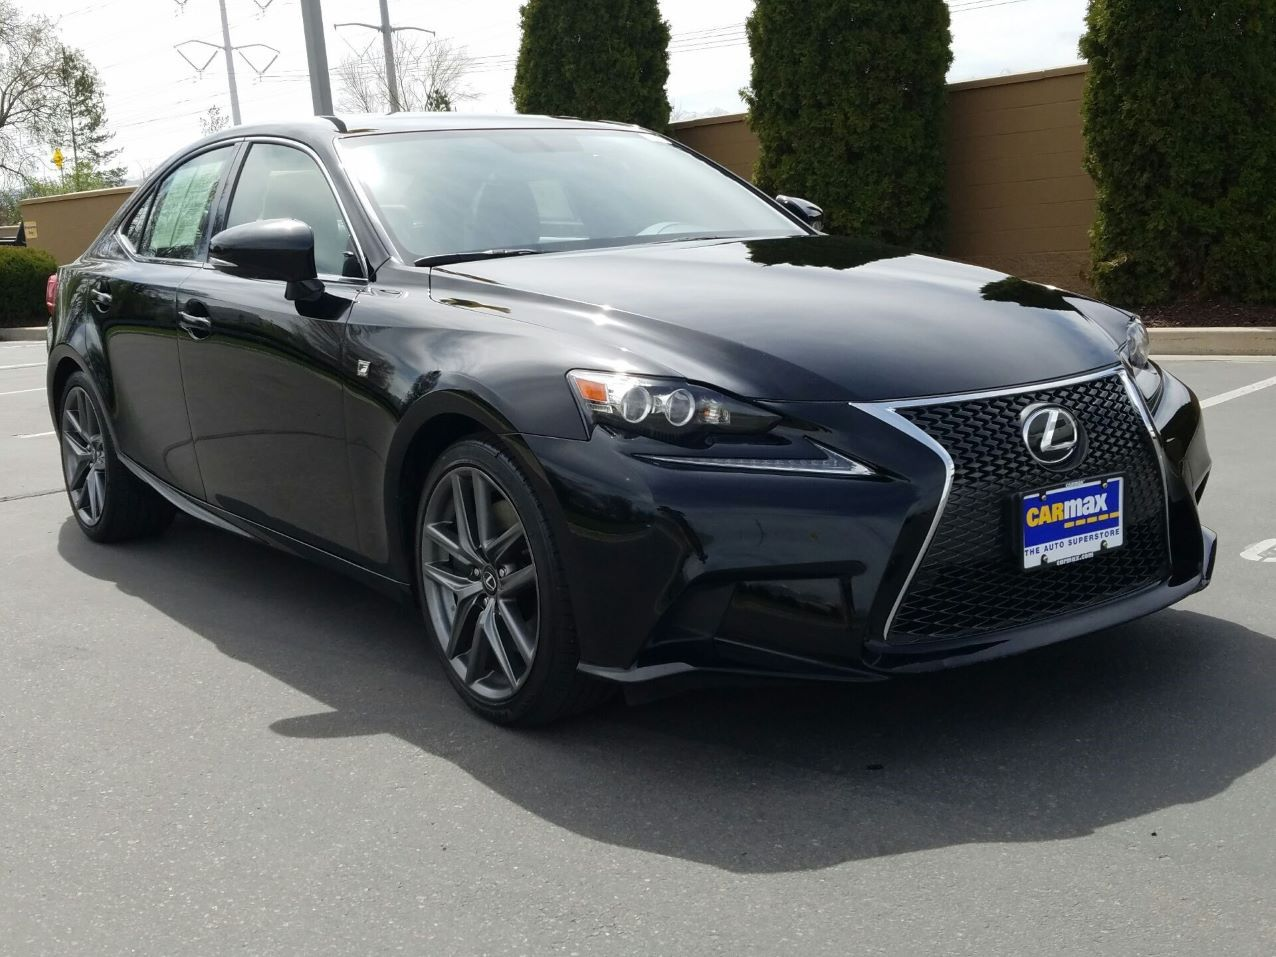 Used 2015 Lexus Is 350 In South Jordan Utah Carmax New Trucks Best Family Cars Lexus